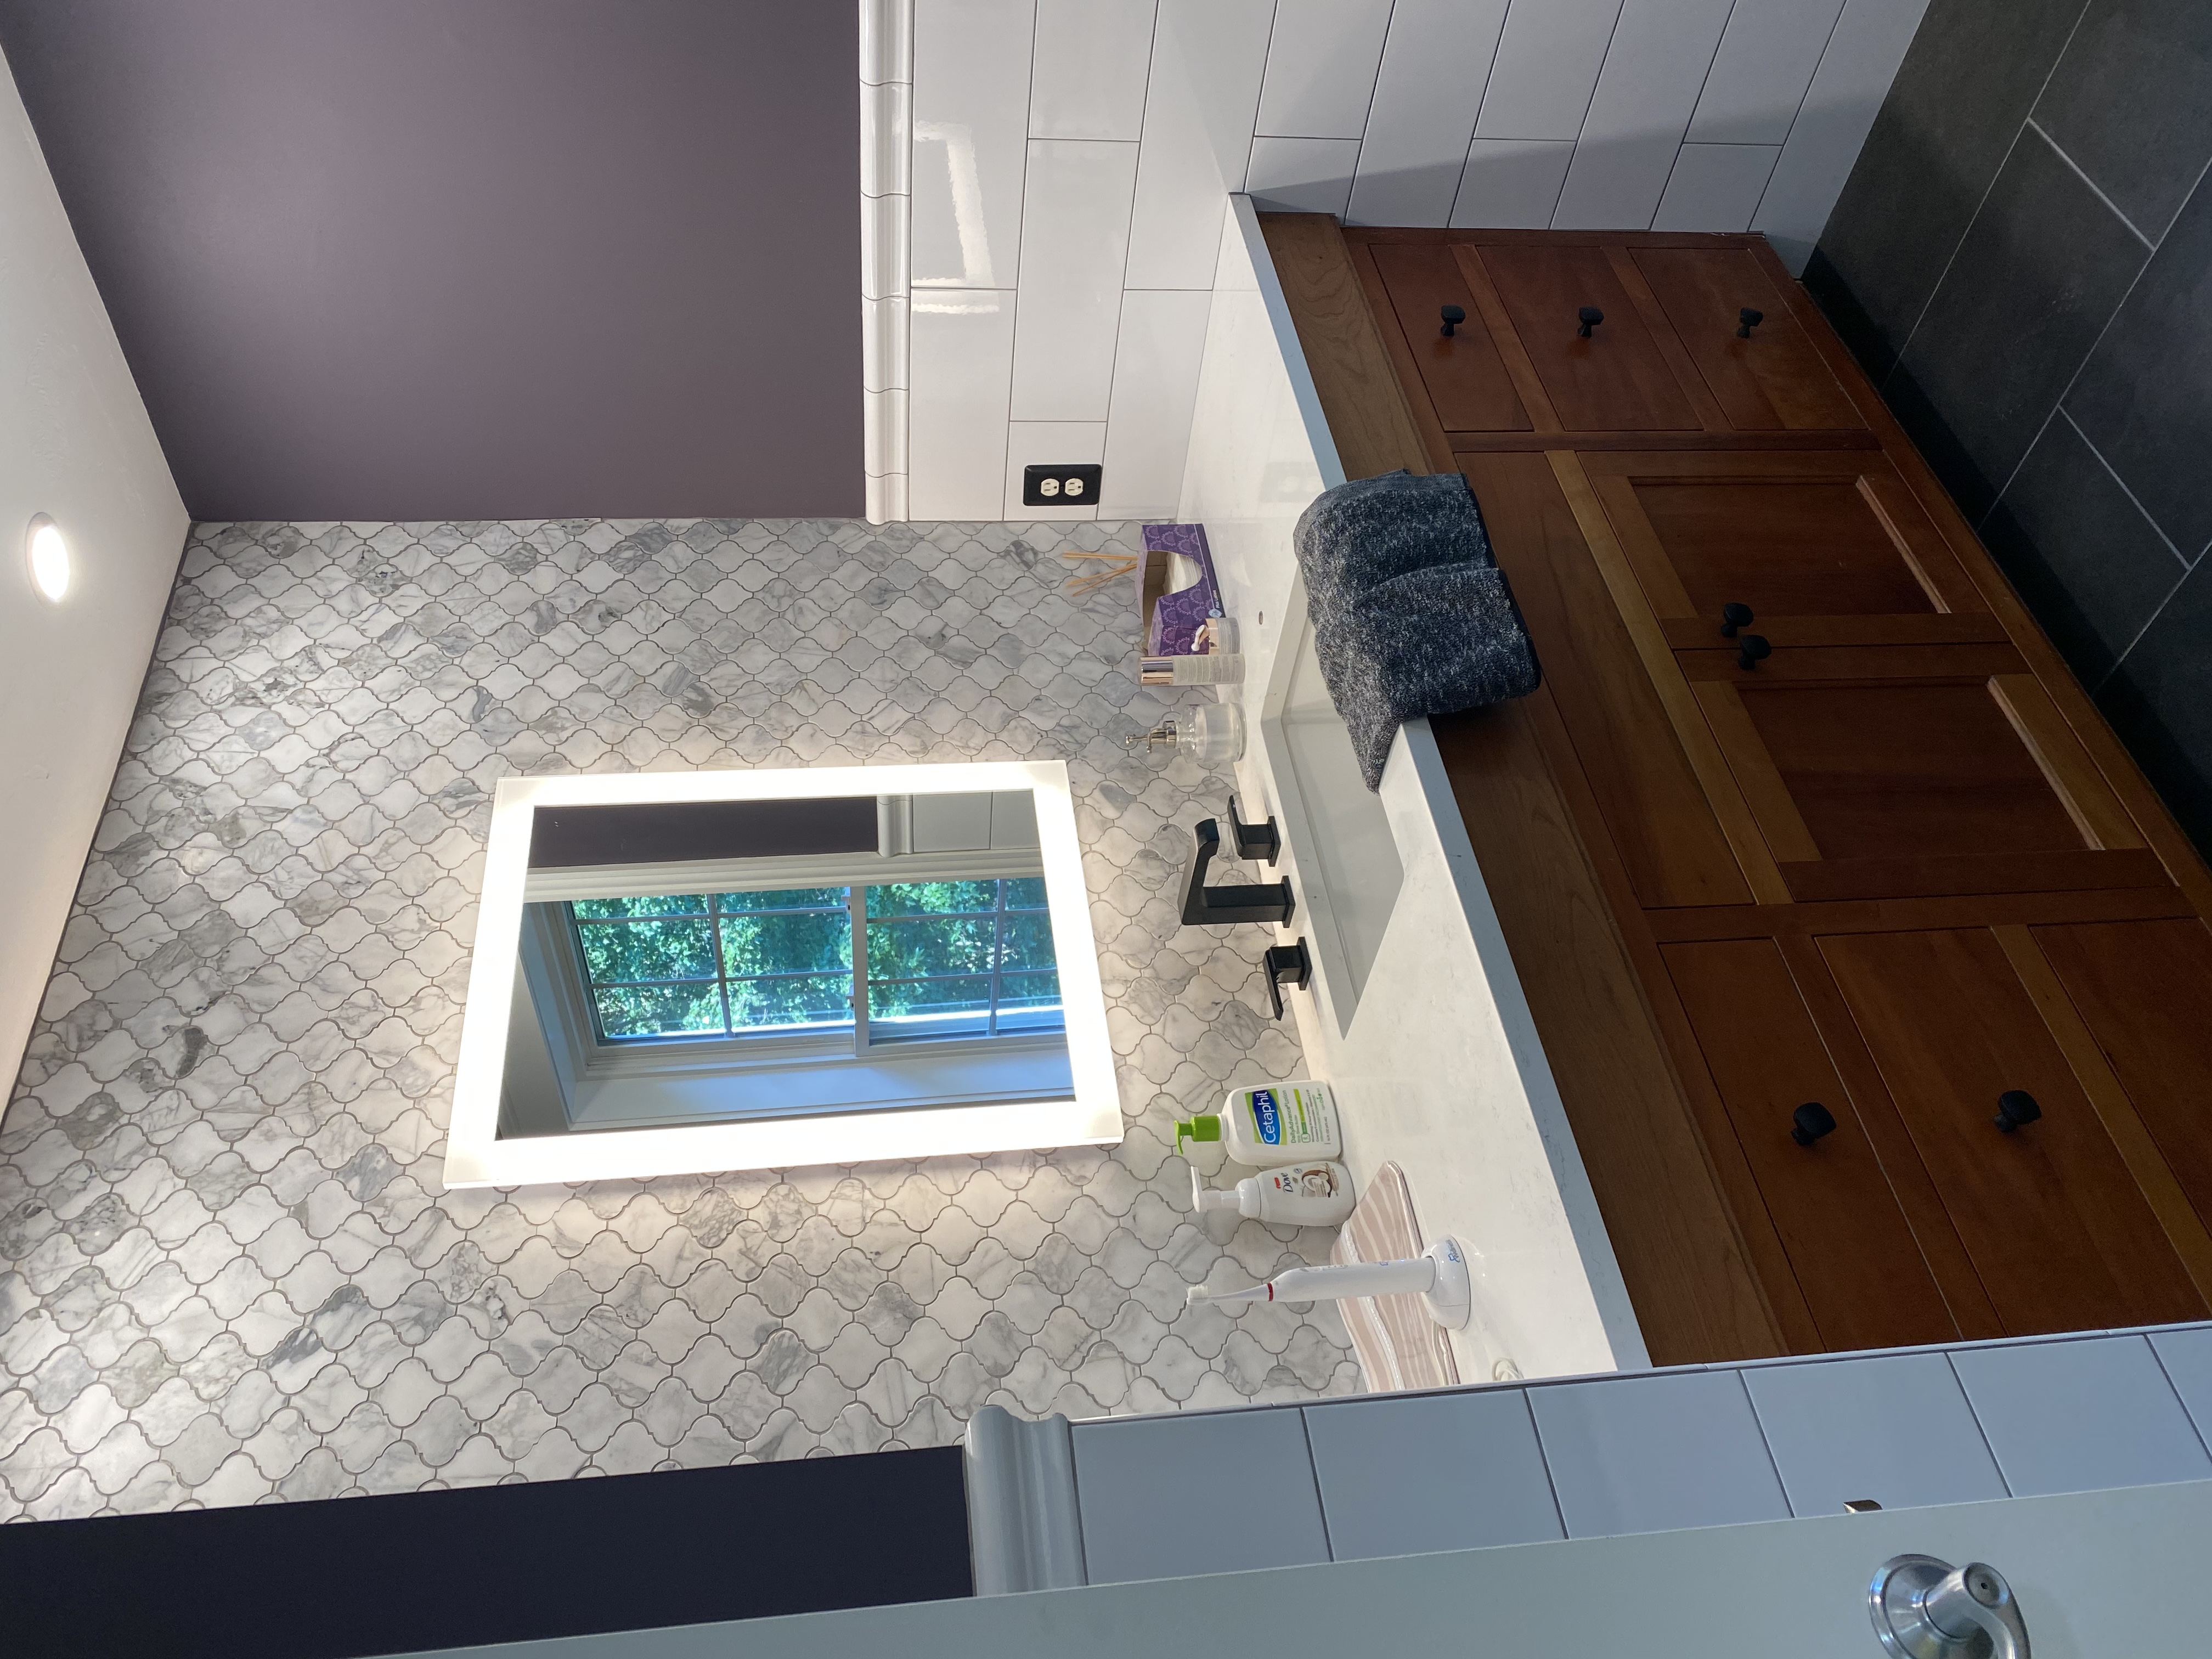 A recent bathroom remodel featuring an arabesque tile backsplash, glossy subway tile half-wall, and dark tile on the floor.